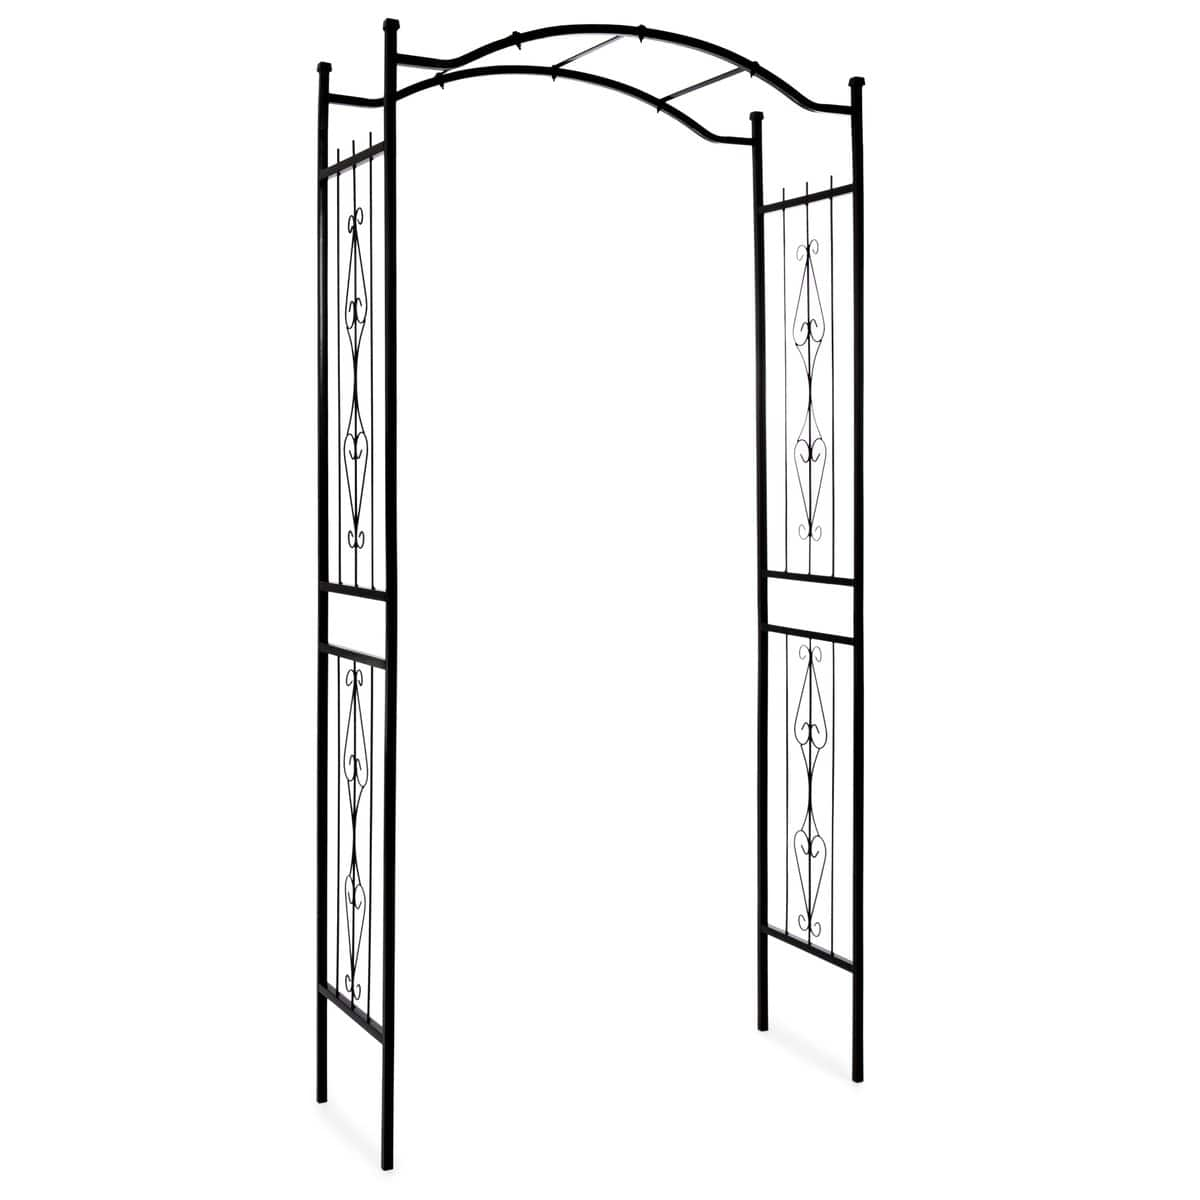 92in Steel Garden Arch Arbor with Free Shipping $64.99